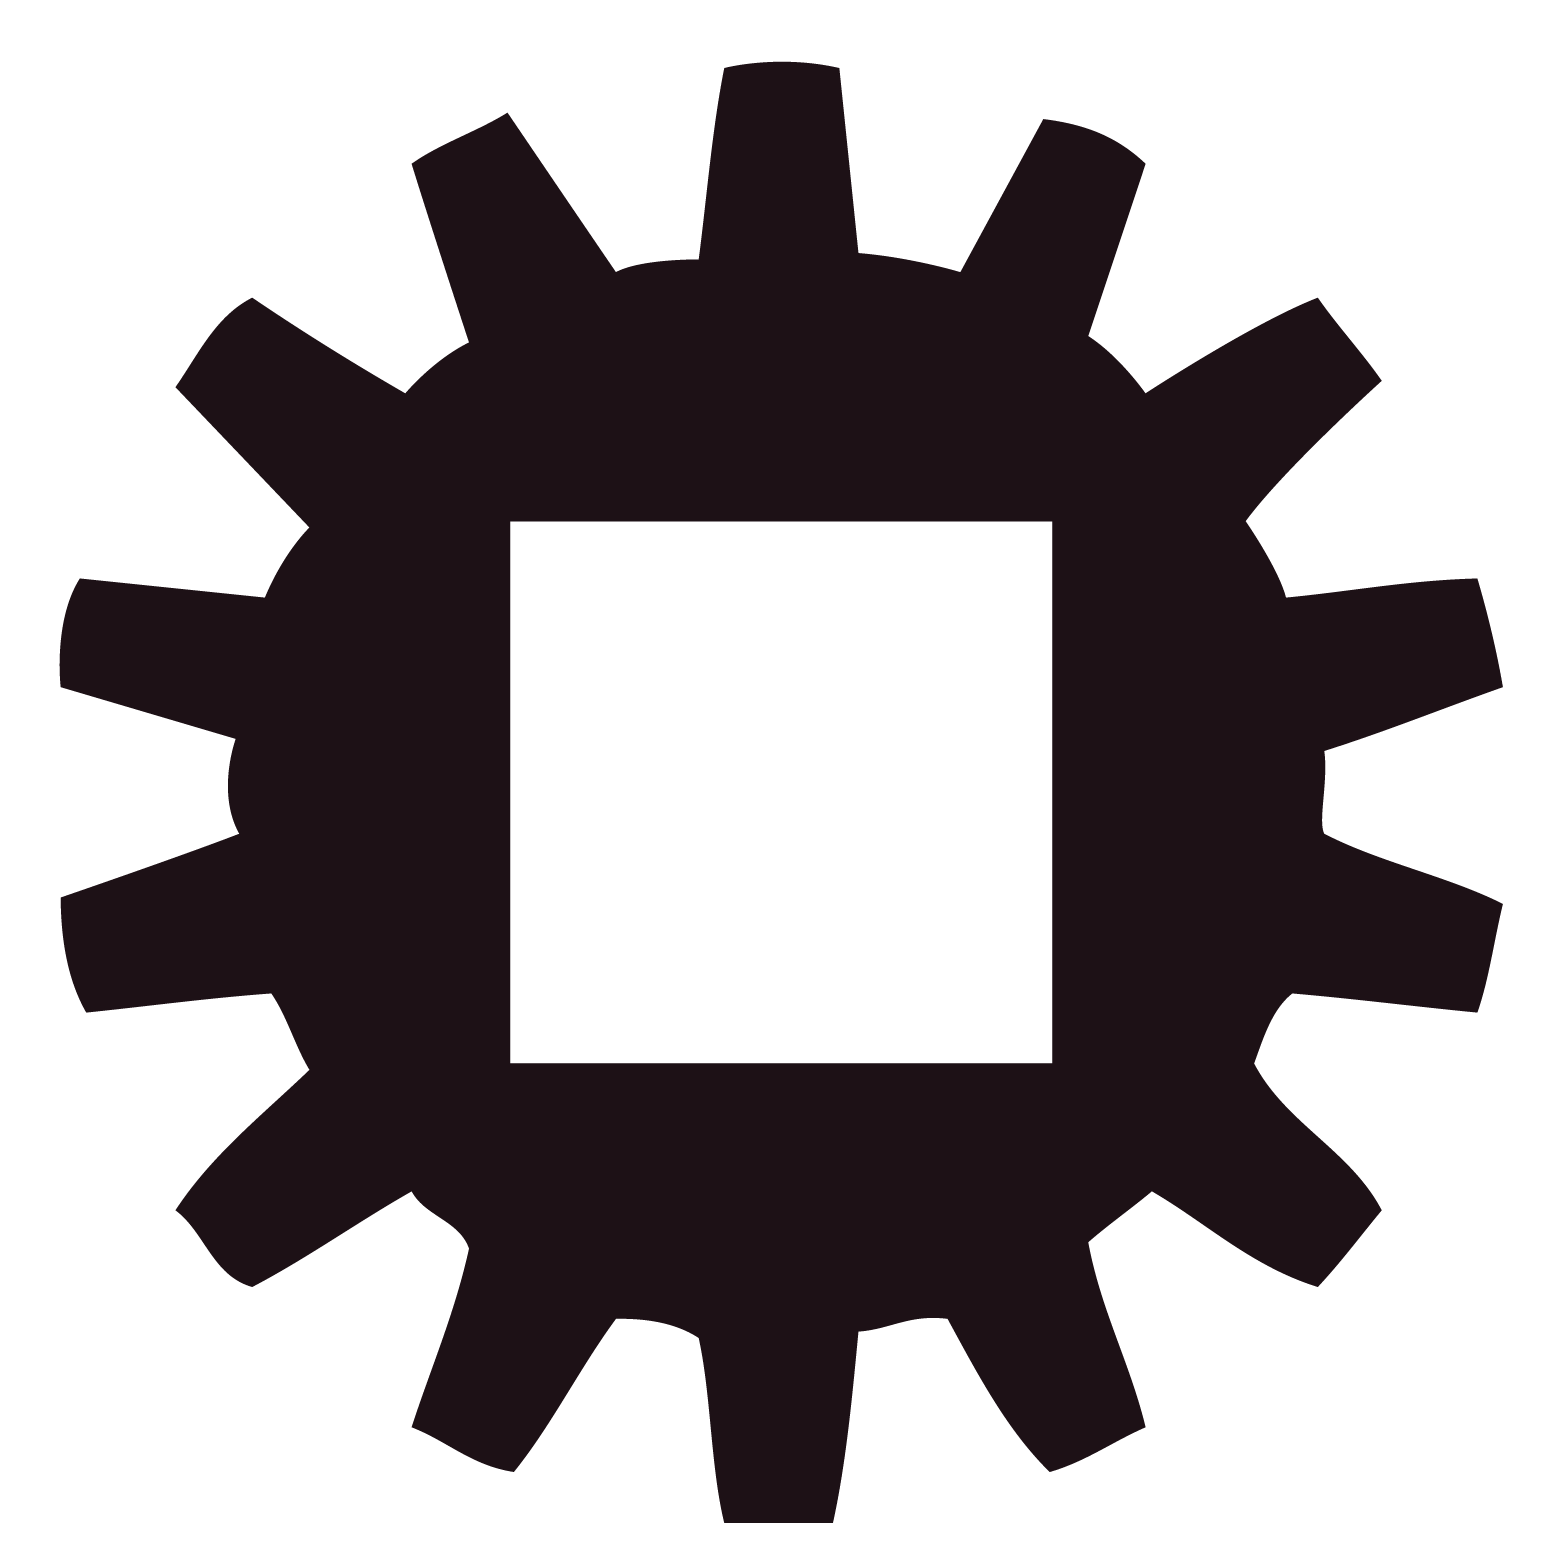 Transparent gear jpeg. Collection of free geer